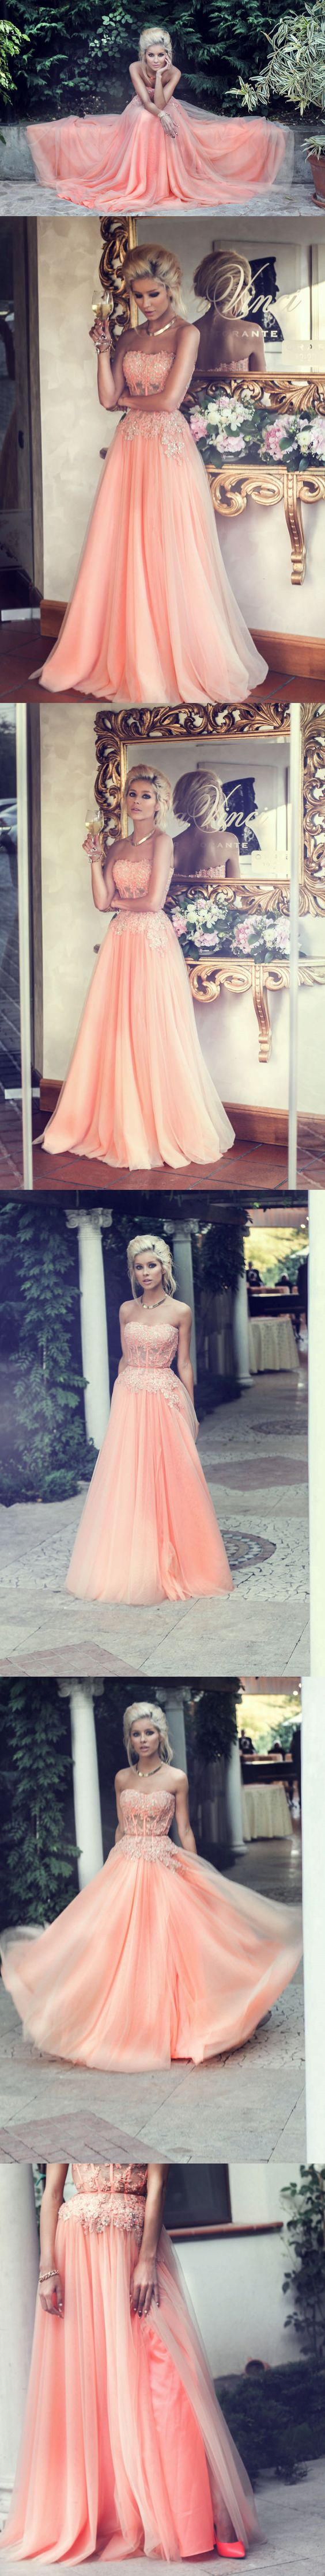 New fashion girls party dresses beaded bodice off shoulder long prom dresses evening gown